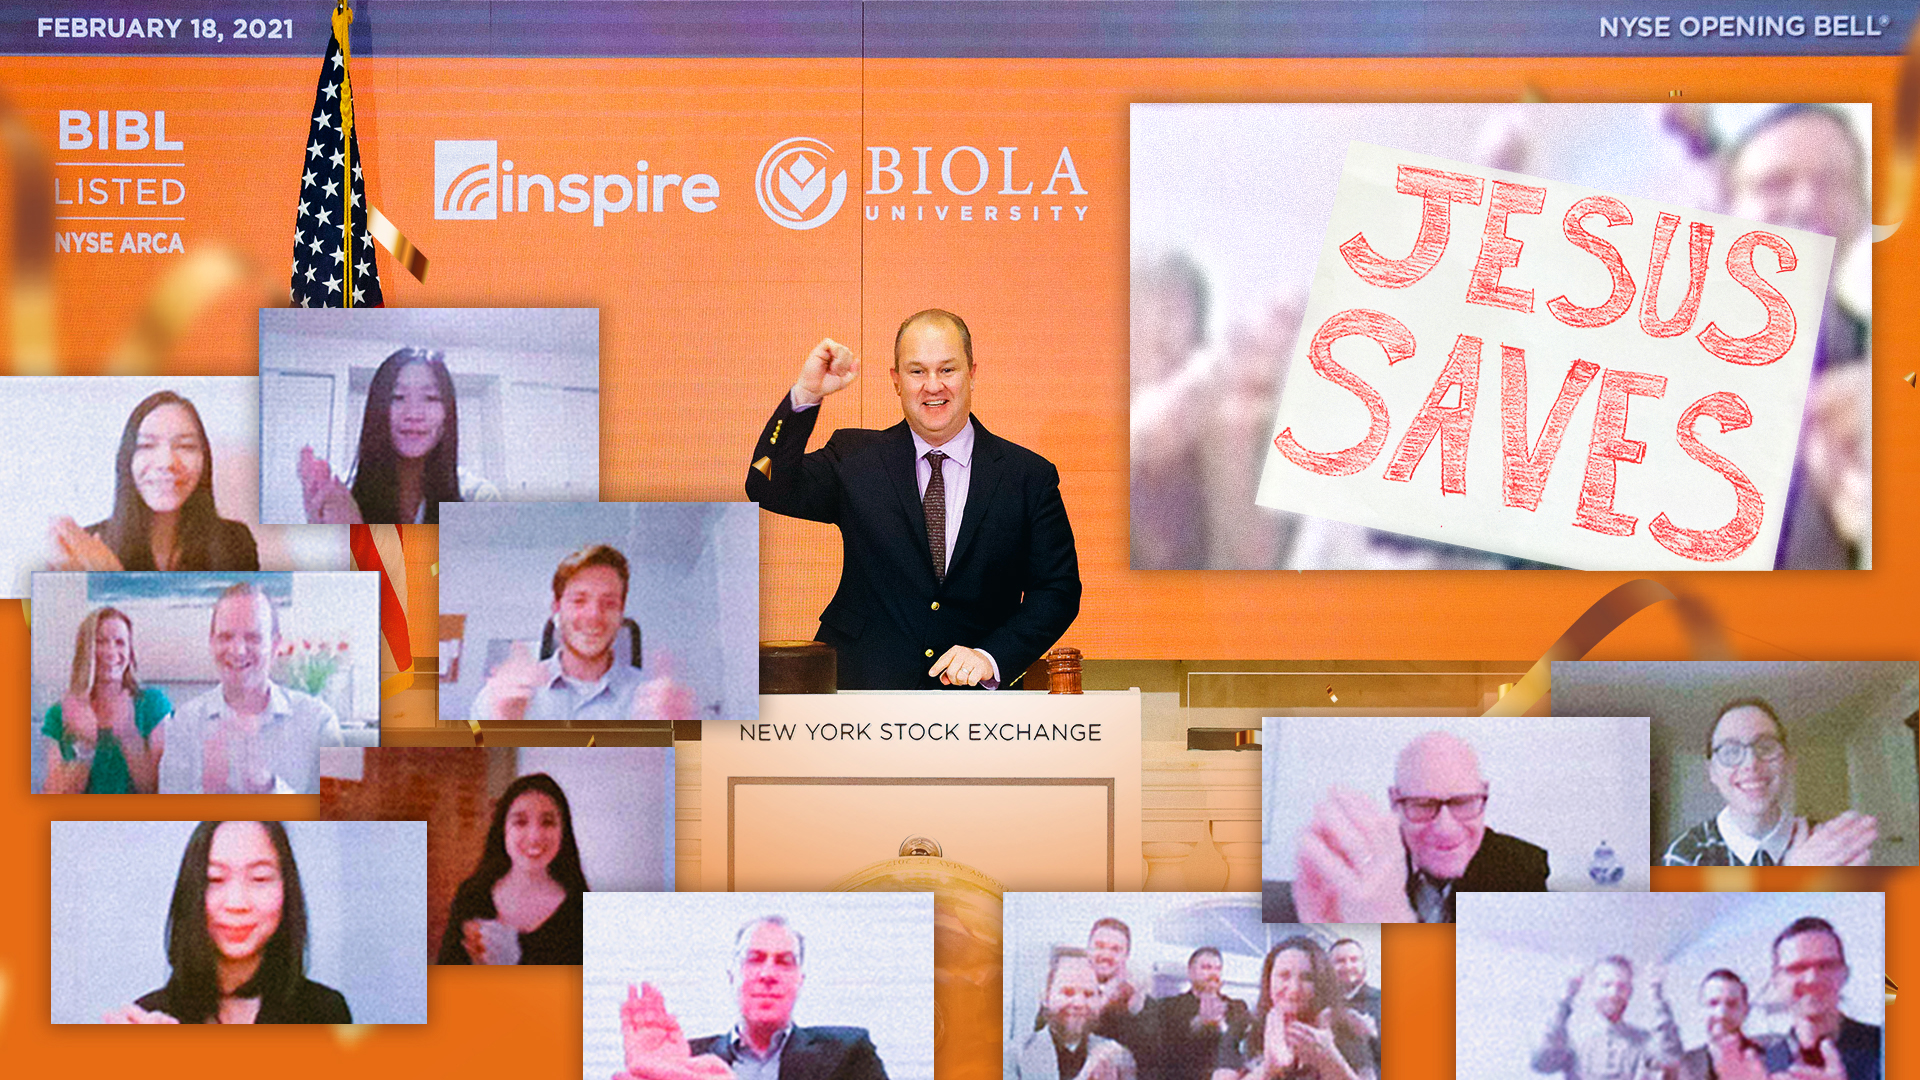 """""""Jesus Saves"""" On Display As Inspire Investing and Biola University Ring NYSE Opening Bell"""